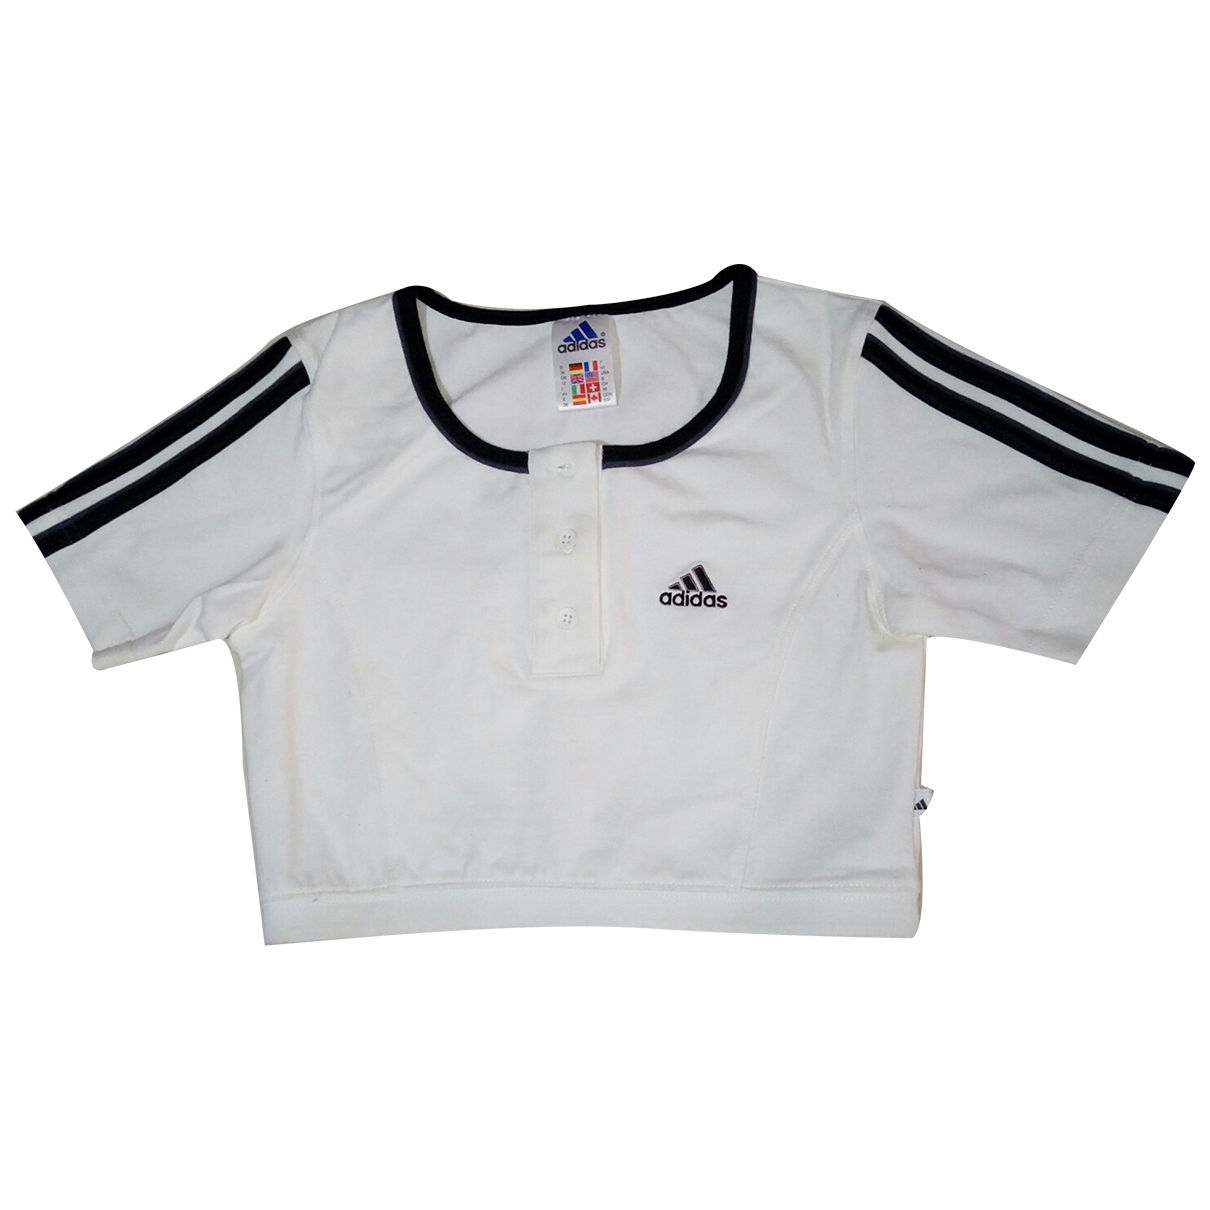 Adidas \N White Cotton  top for Women 44 IT